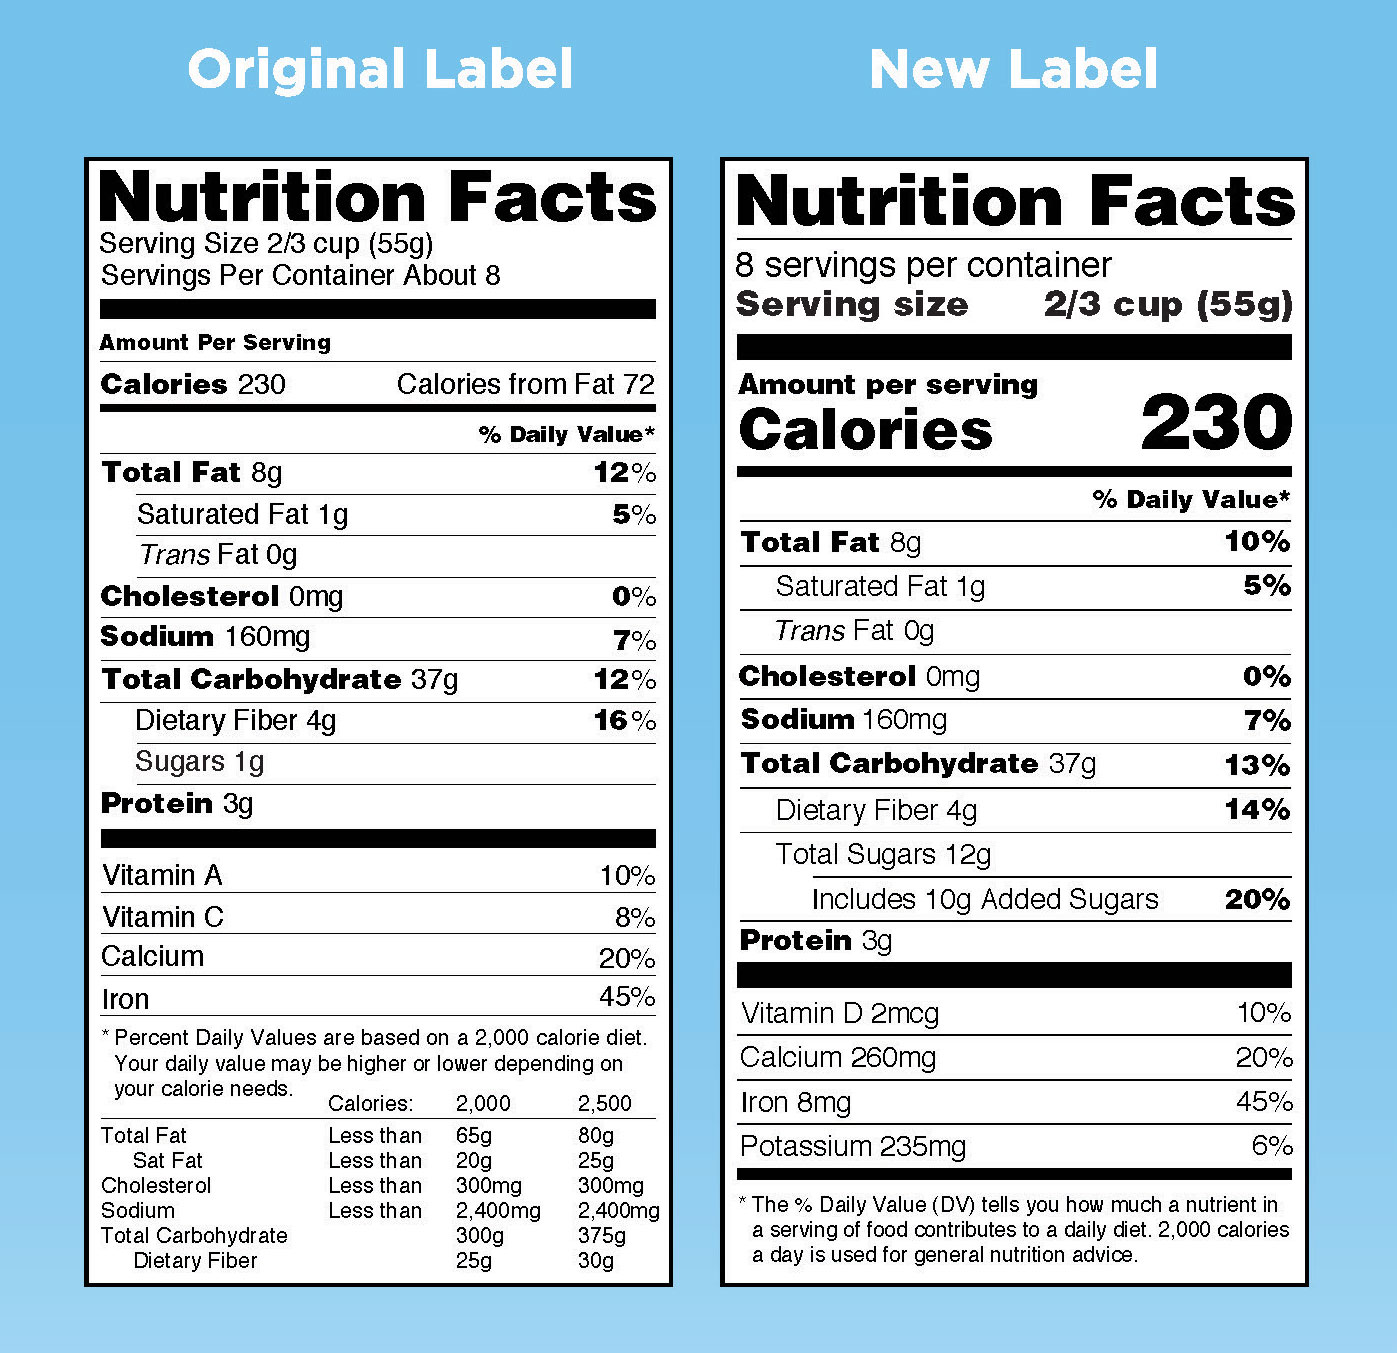 What You Need To Know About The New Nutrition Facts Label